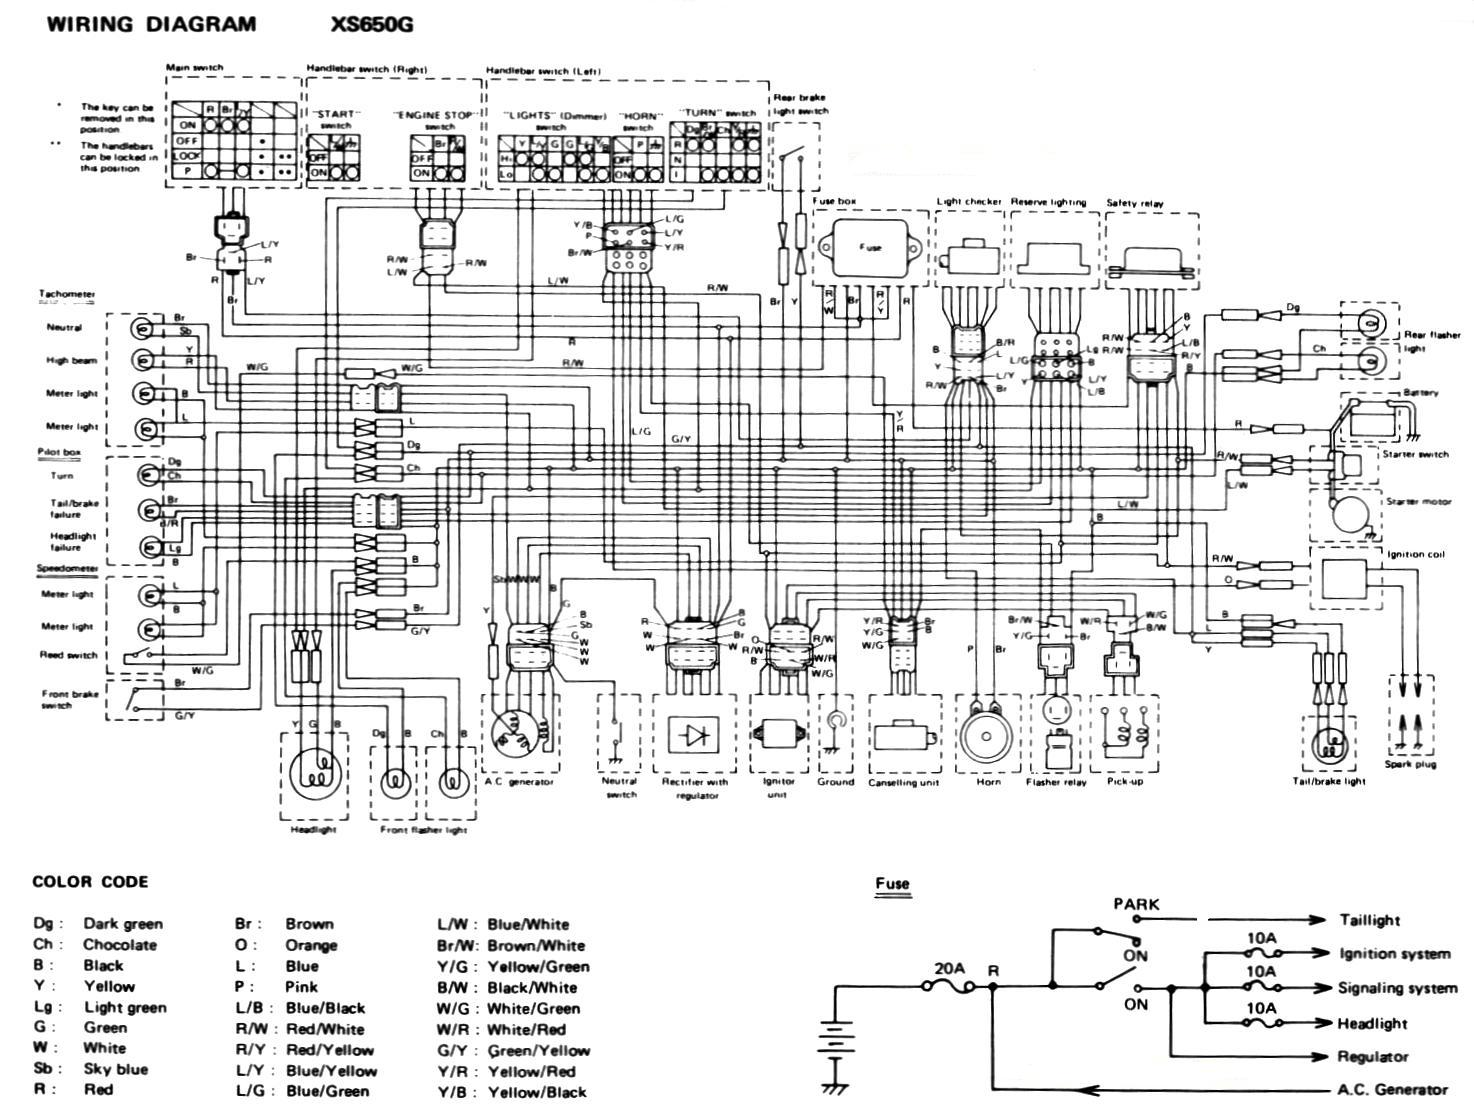 80XS650G wiring diagrams 1982 xs650 wiring diagram at eliteediting.co